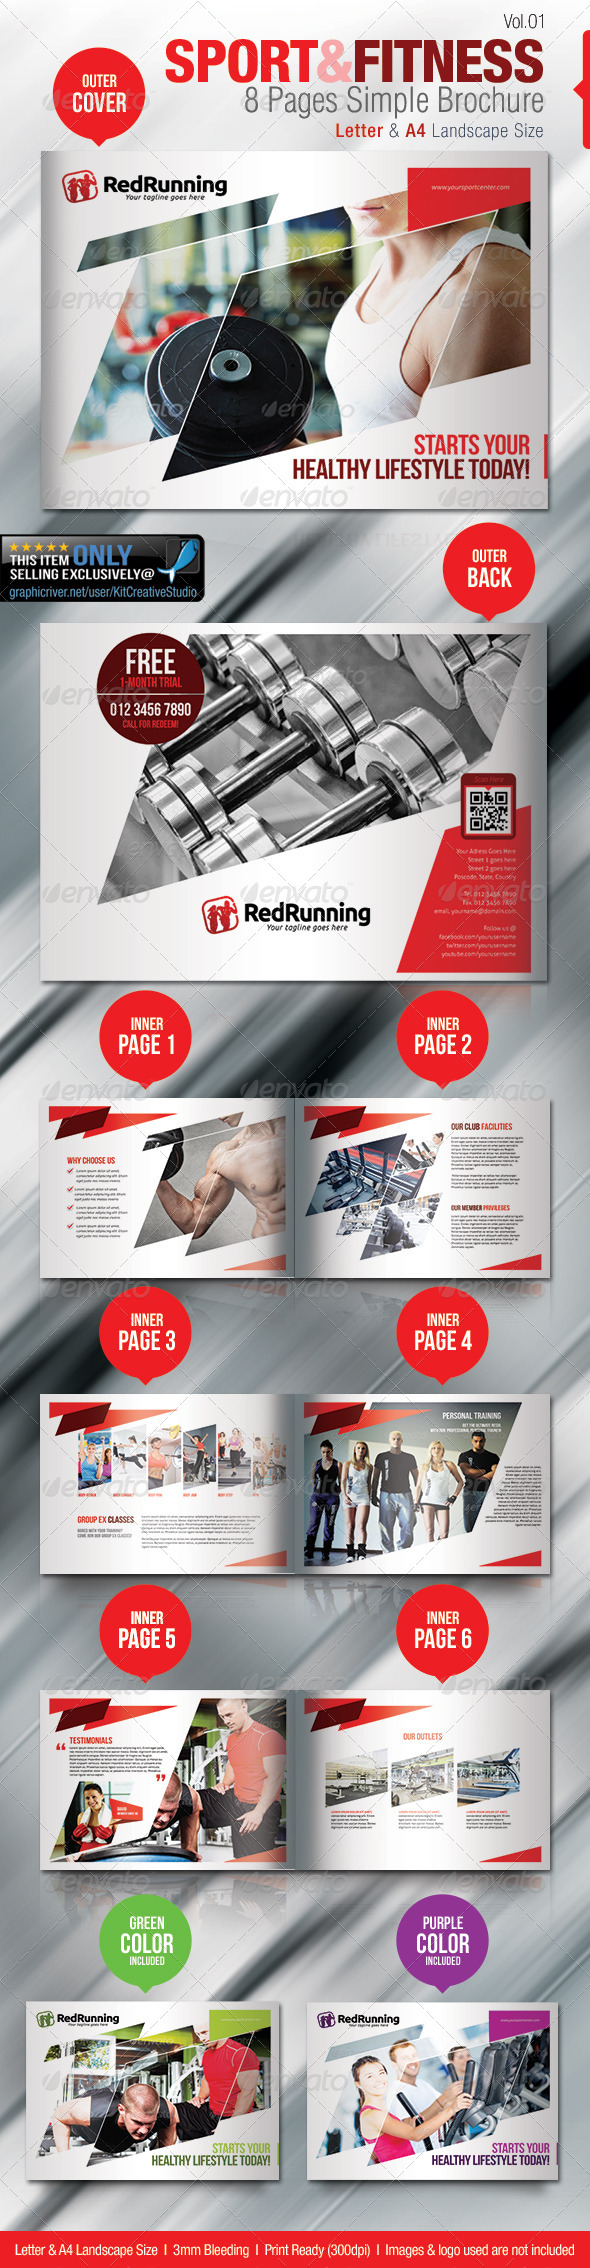 GraphicRiver Fitness & Sport 8 Pages Simple Brochure 5325130